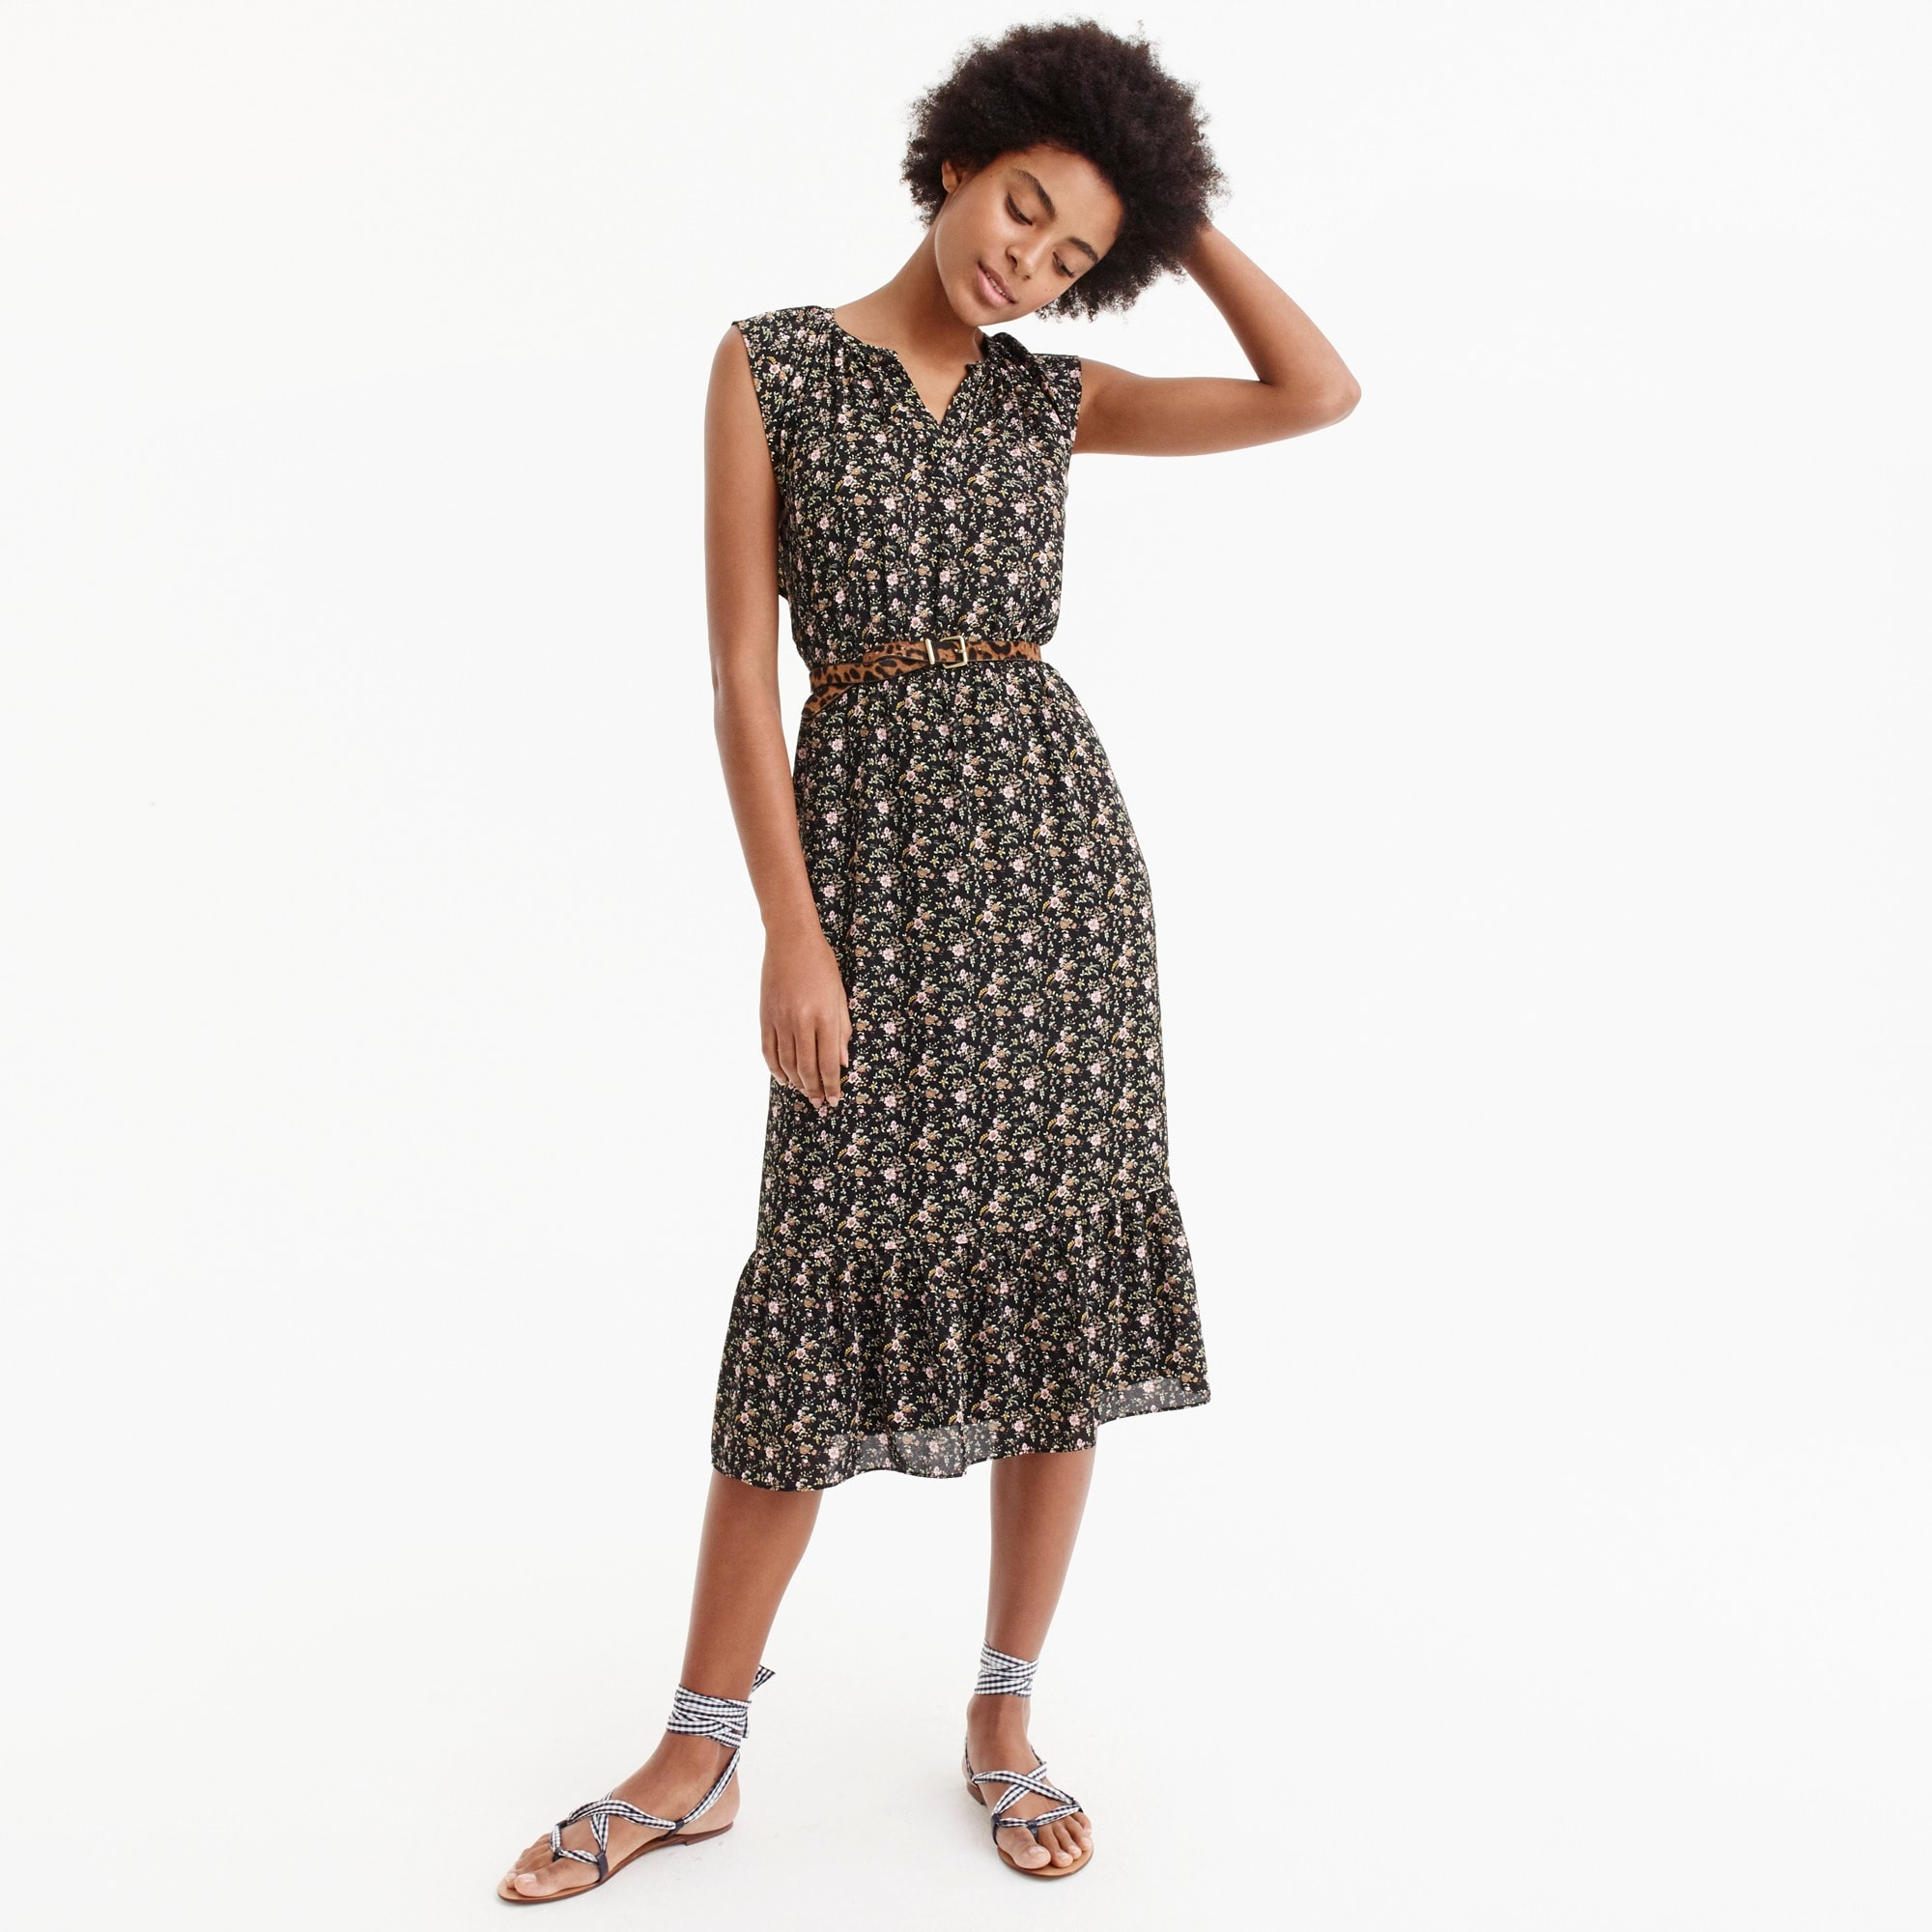 J.Crew Mercantile cap-sleeve midi dress in superbloom women dresses c